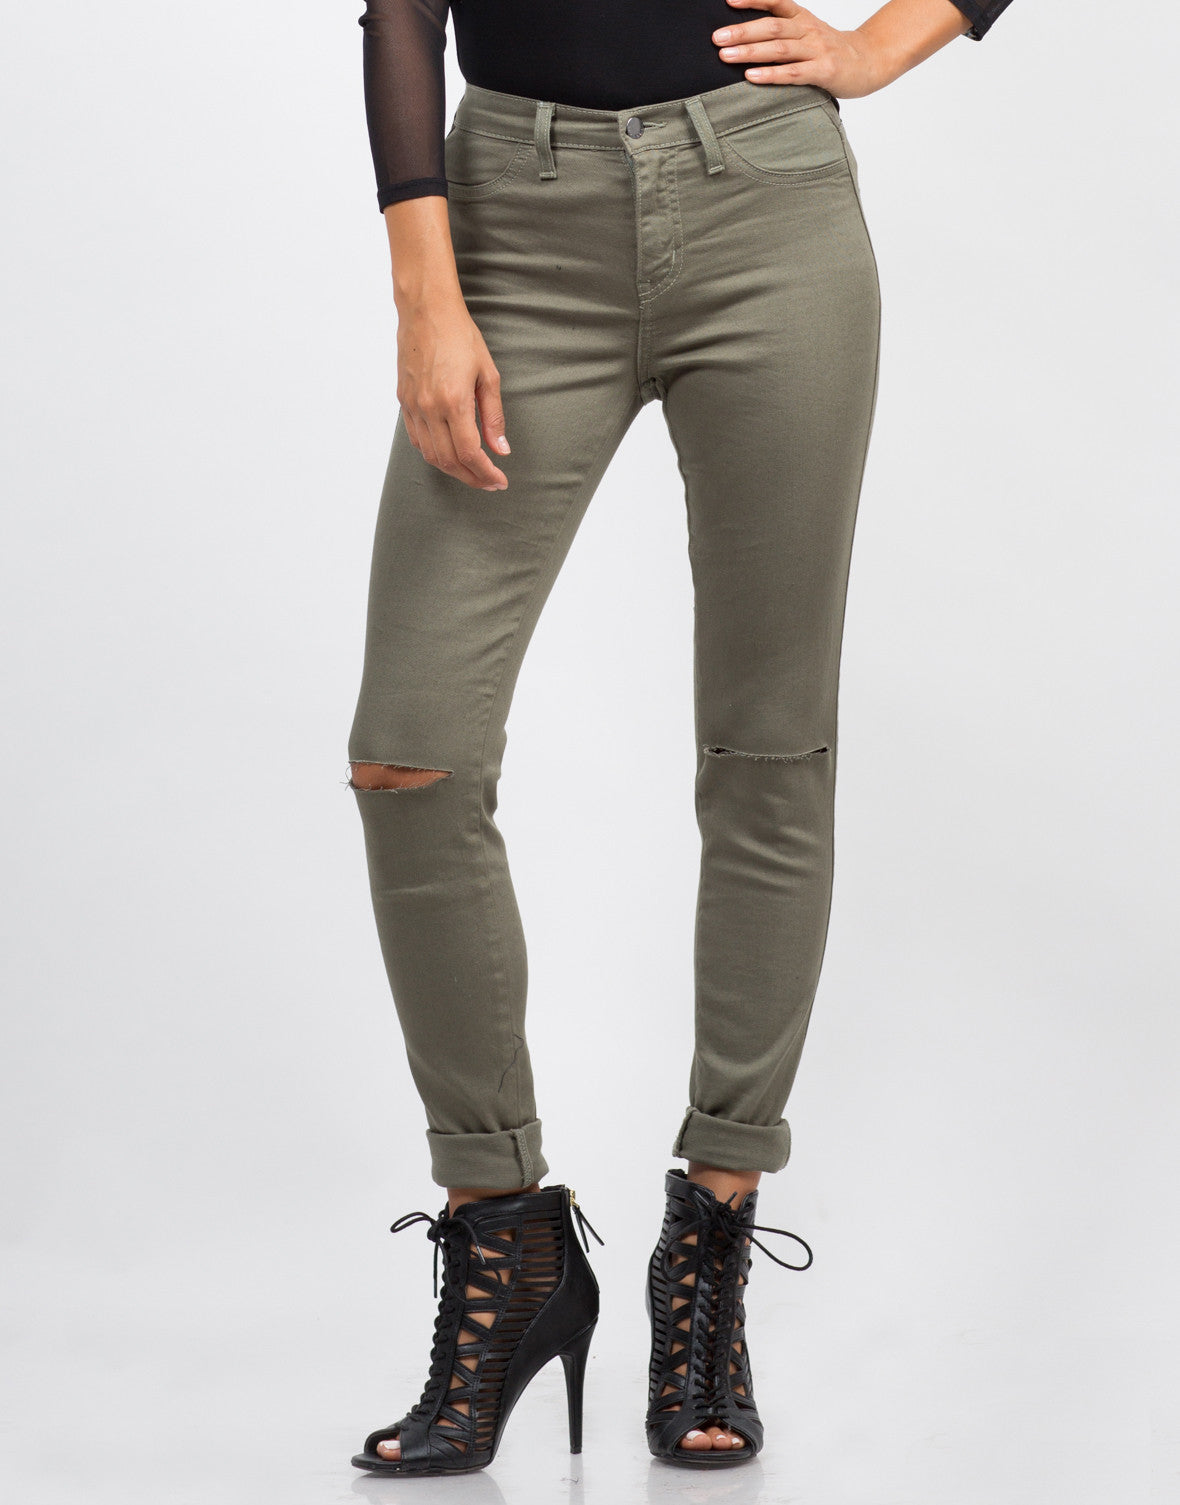 Front View of High Waisted Knee Slit Skinny Pants